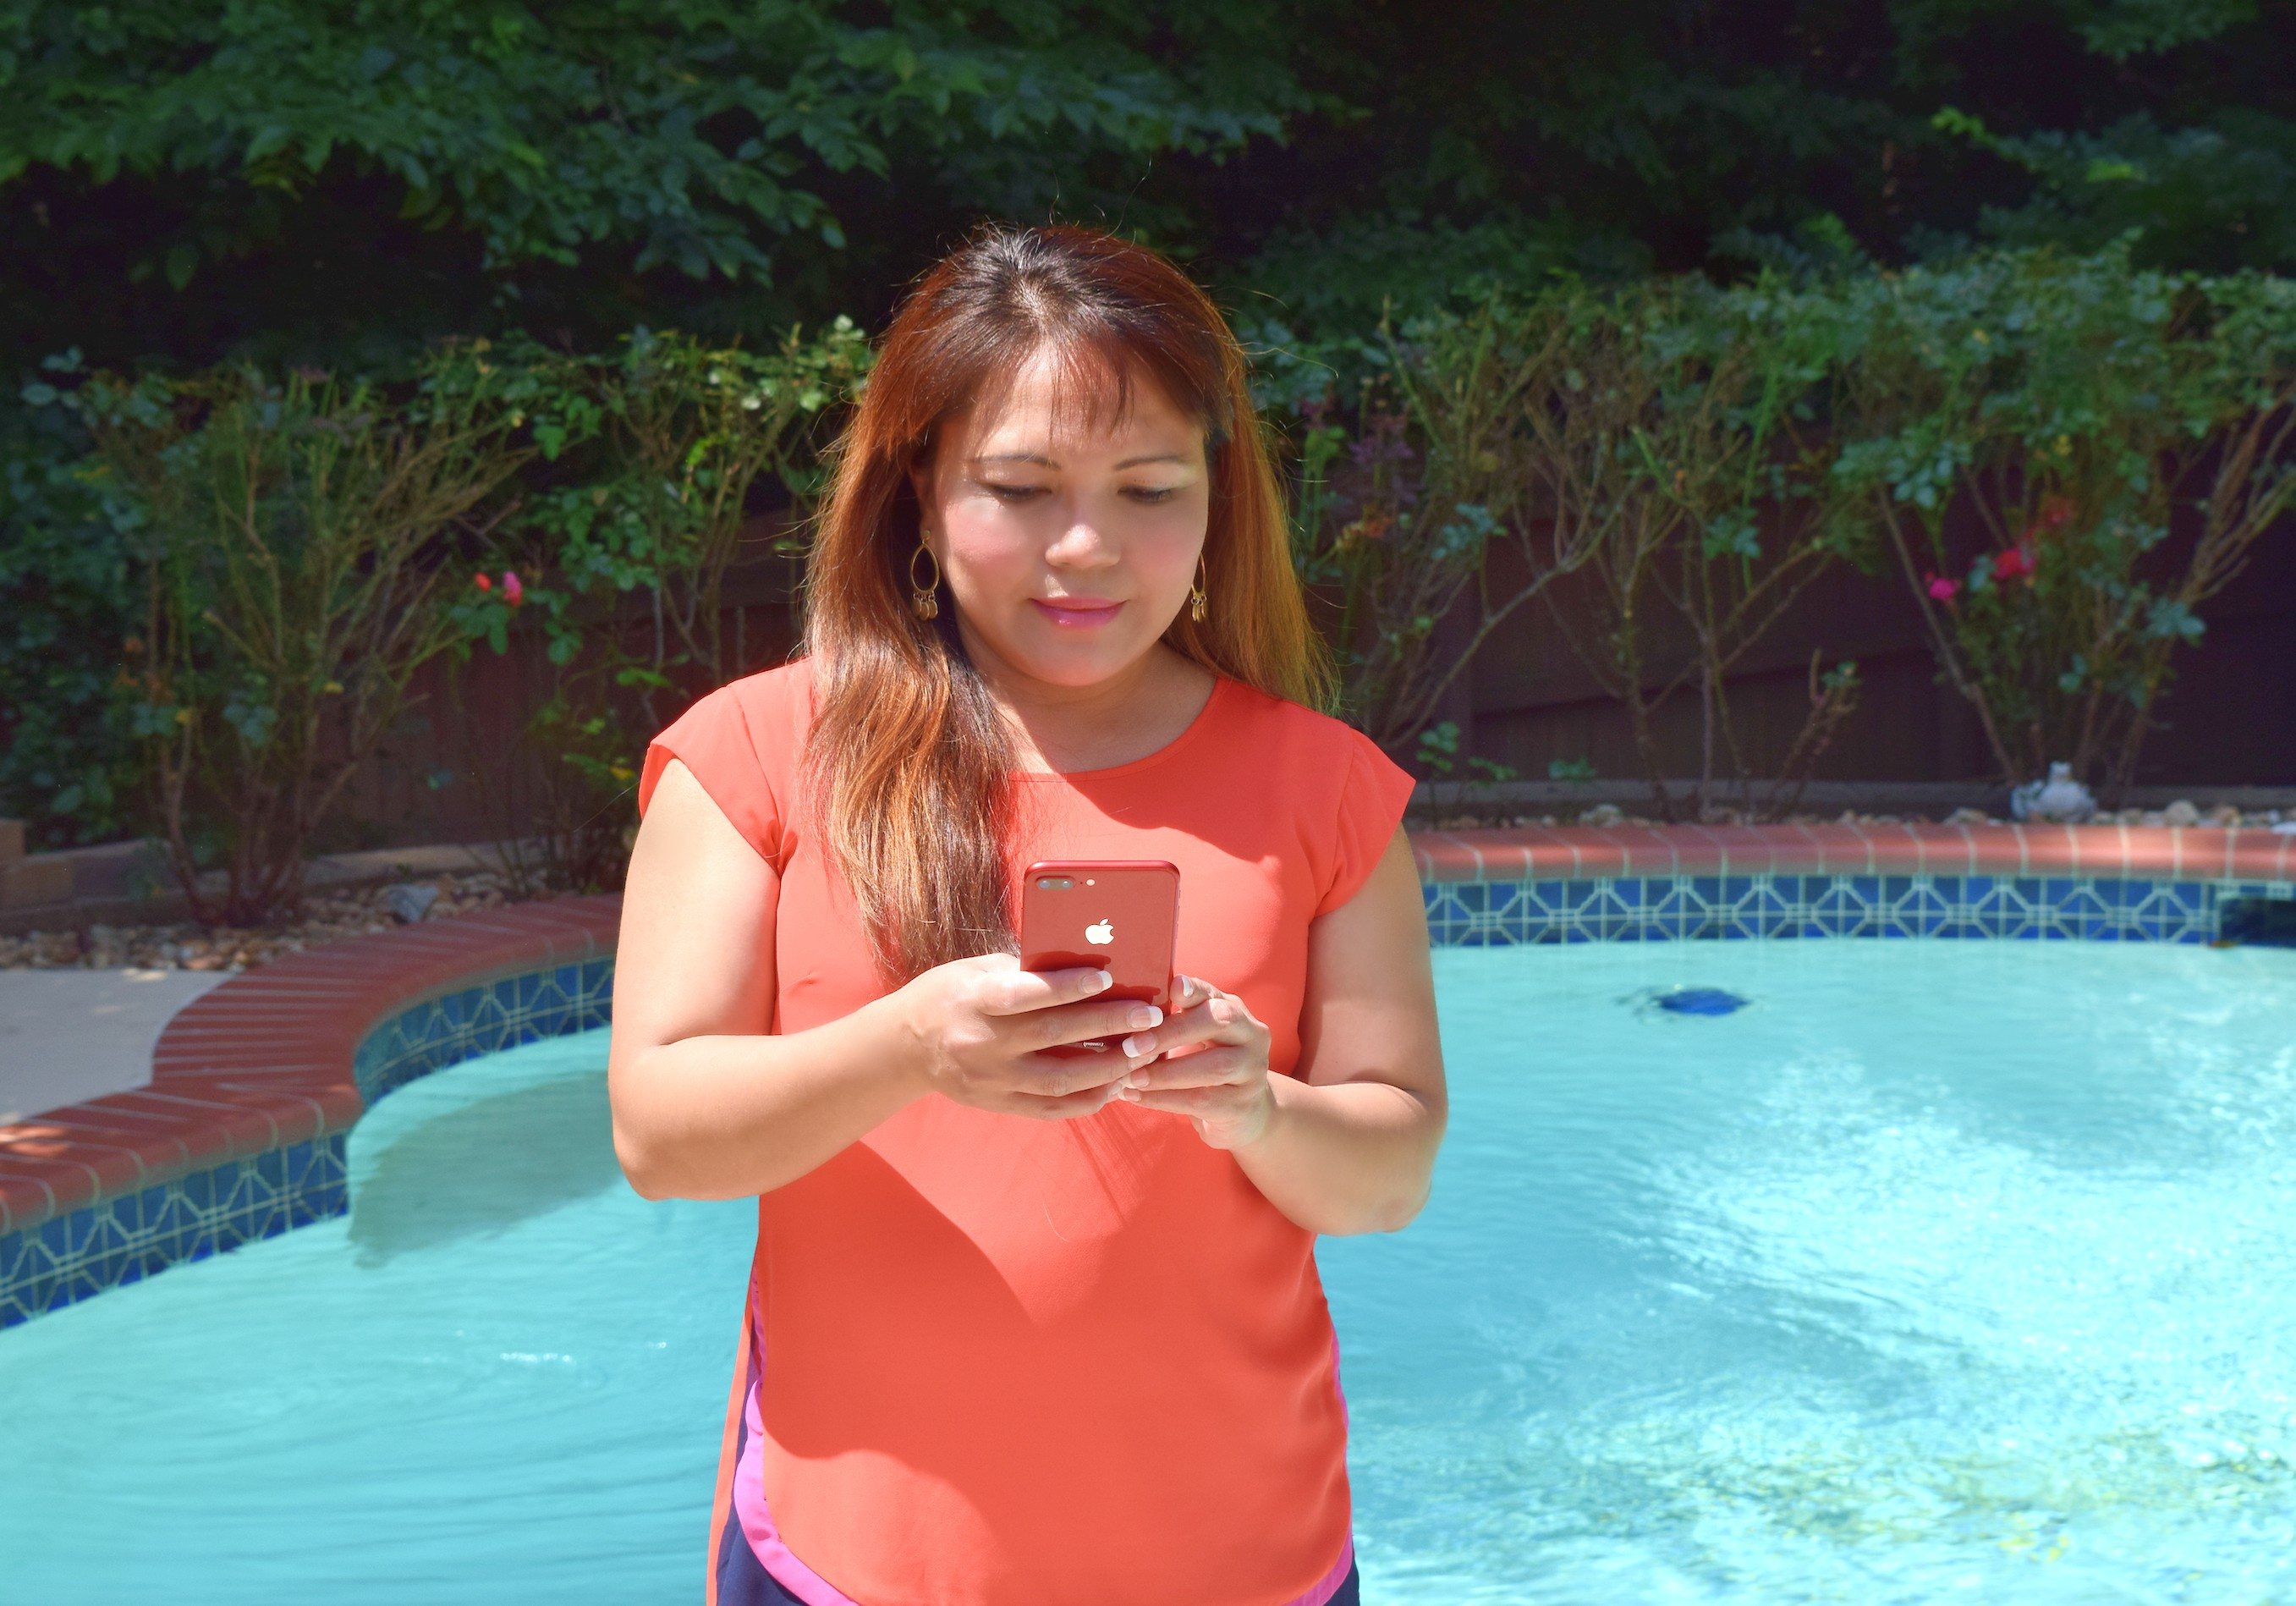 """With T-MobileFamilyMode - an app and device combo launched on June 29 by T-Mobile's """"Un-carrier"""" - I can manage my family's digital life across all of our devices easier and more conveniently!"""